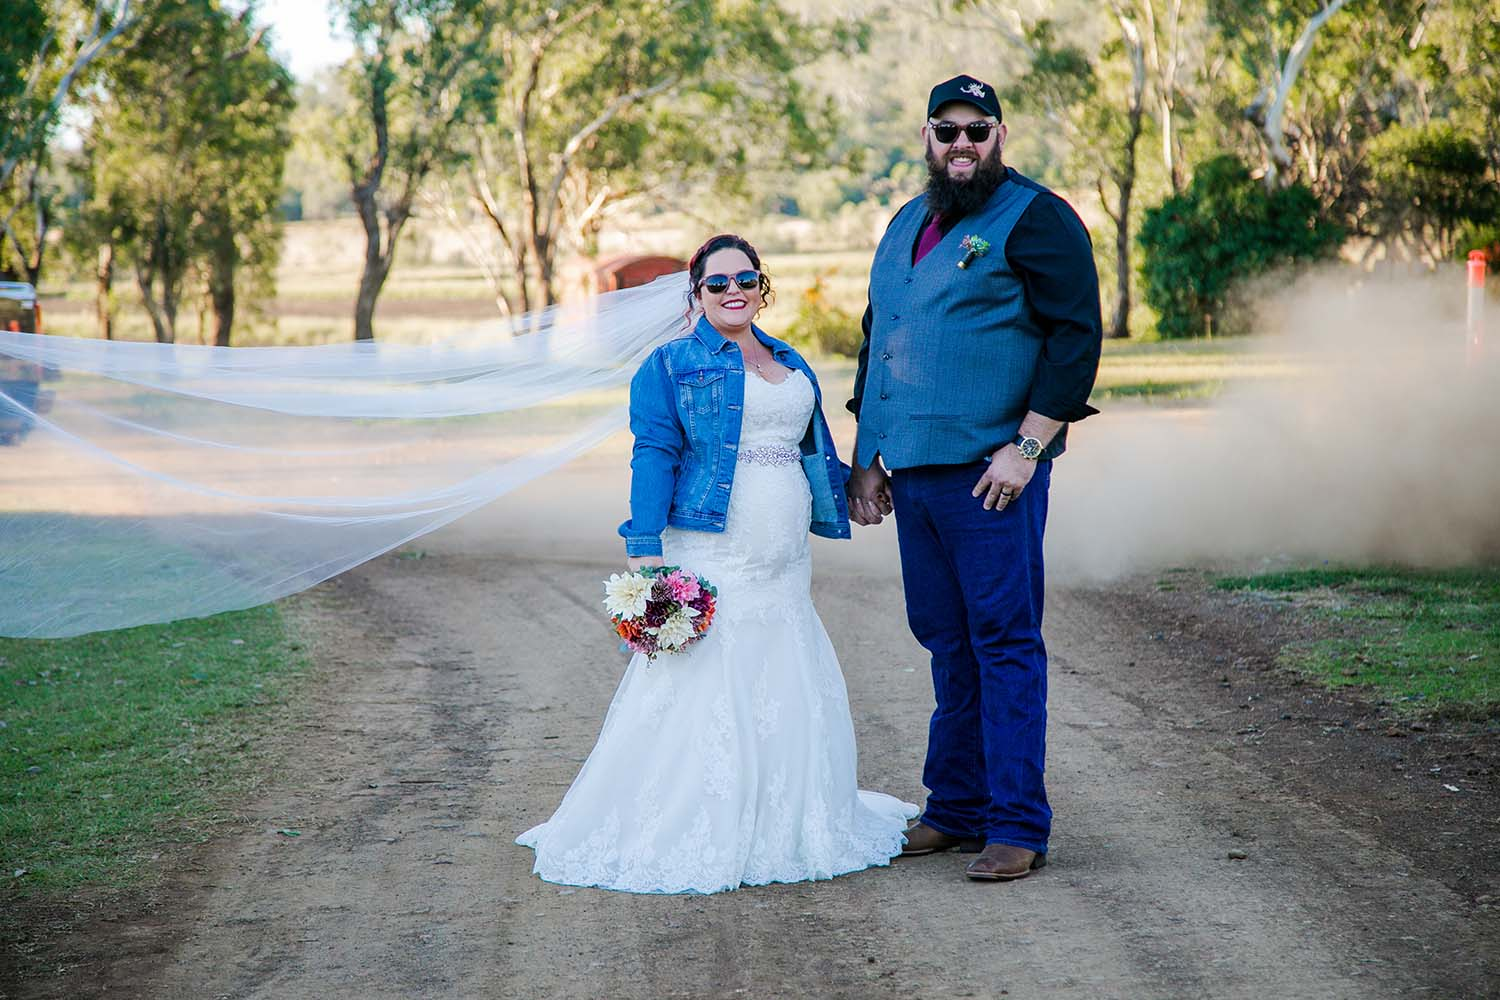 Wedding Photography - couple on dirt road